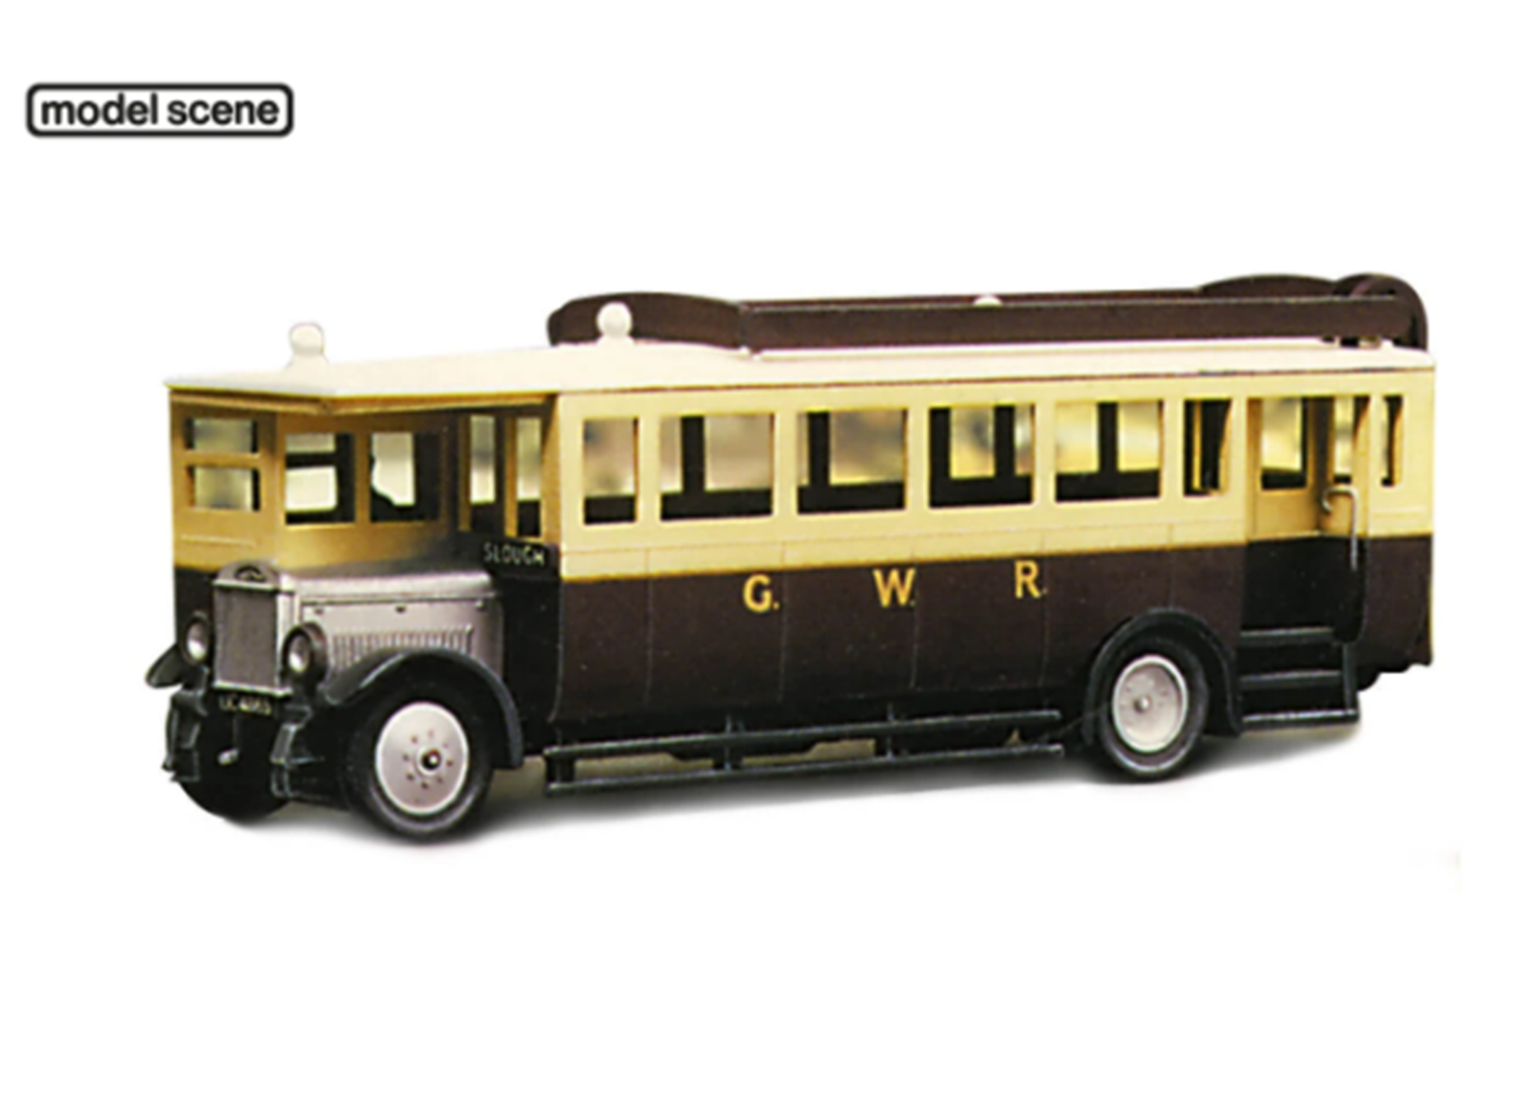 Maudslay Bus - Great Western Railway Vehicle Kit